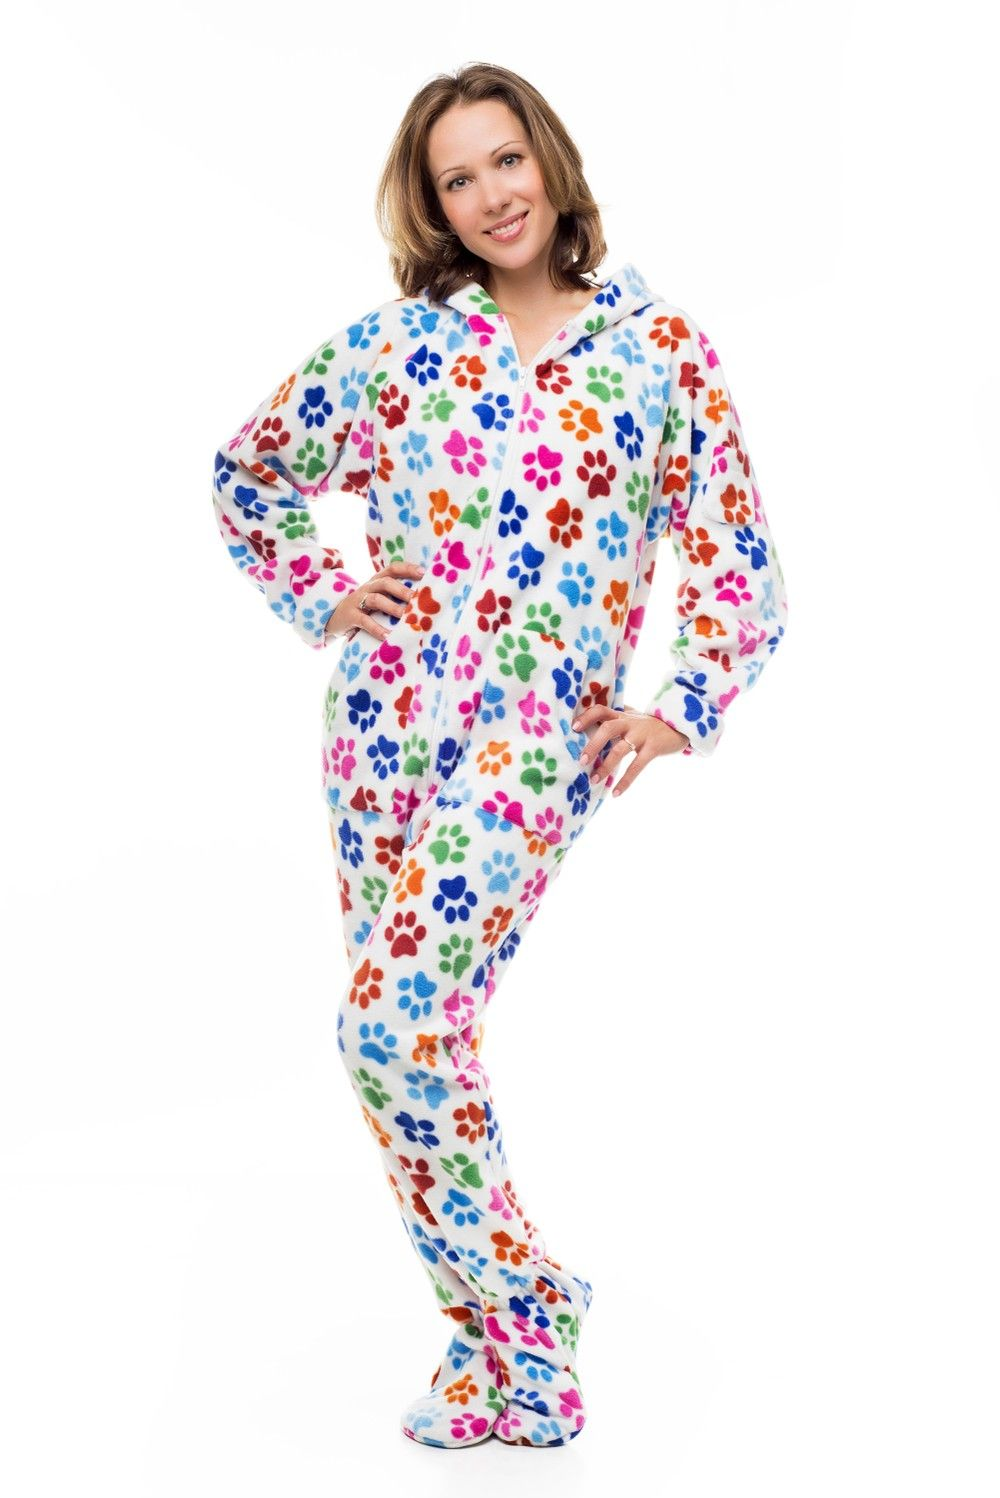 pajamas-footie-set | Footie Pajamas | Pinterest | Pajamas